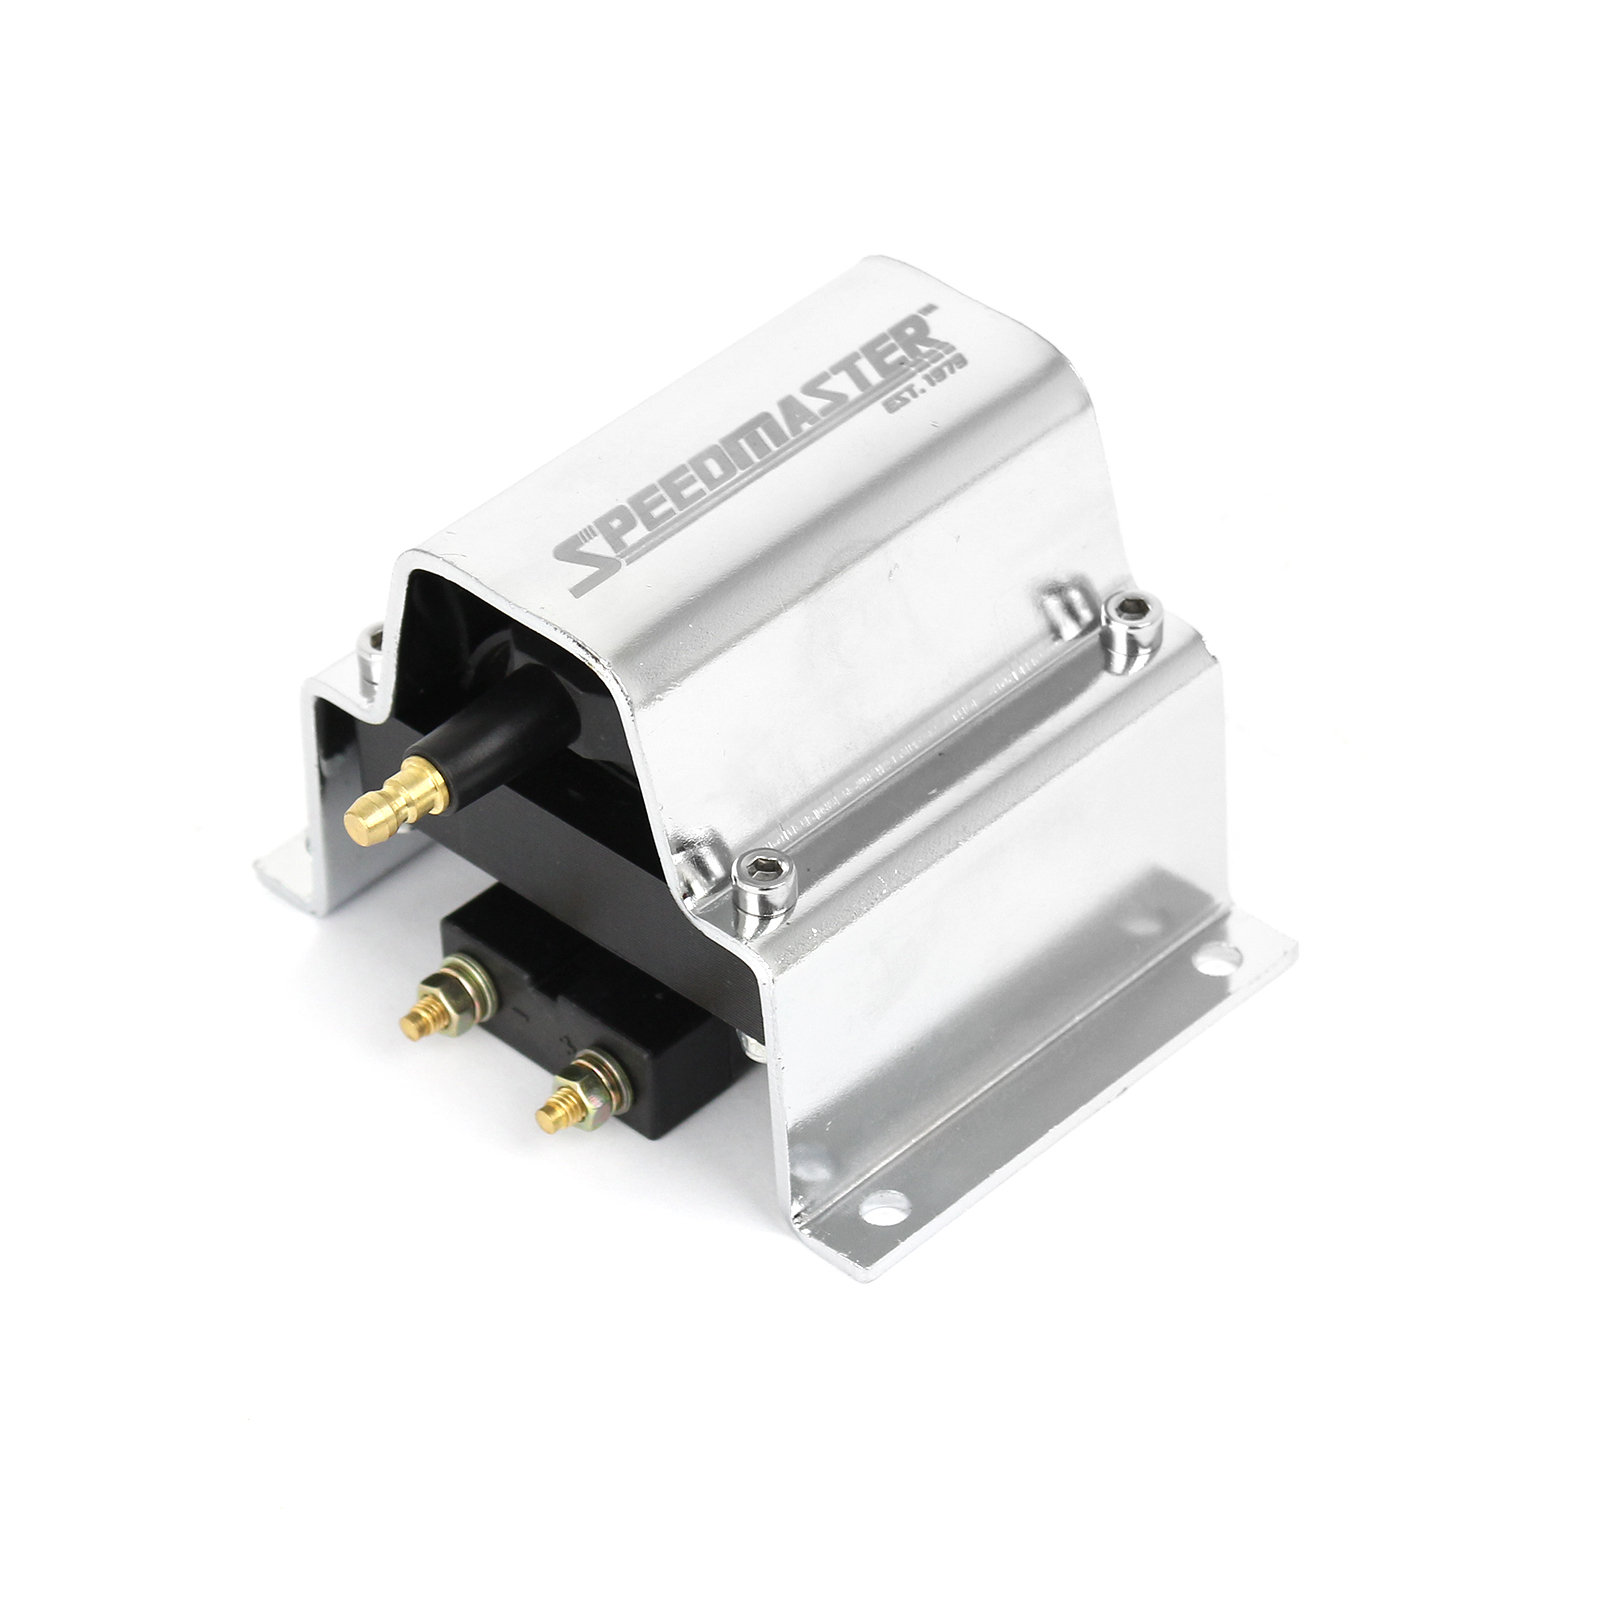 12V HO External Male E-Core Ignition Coil - Chrome